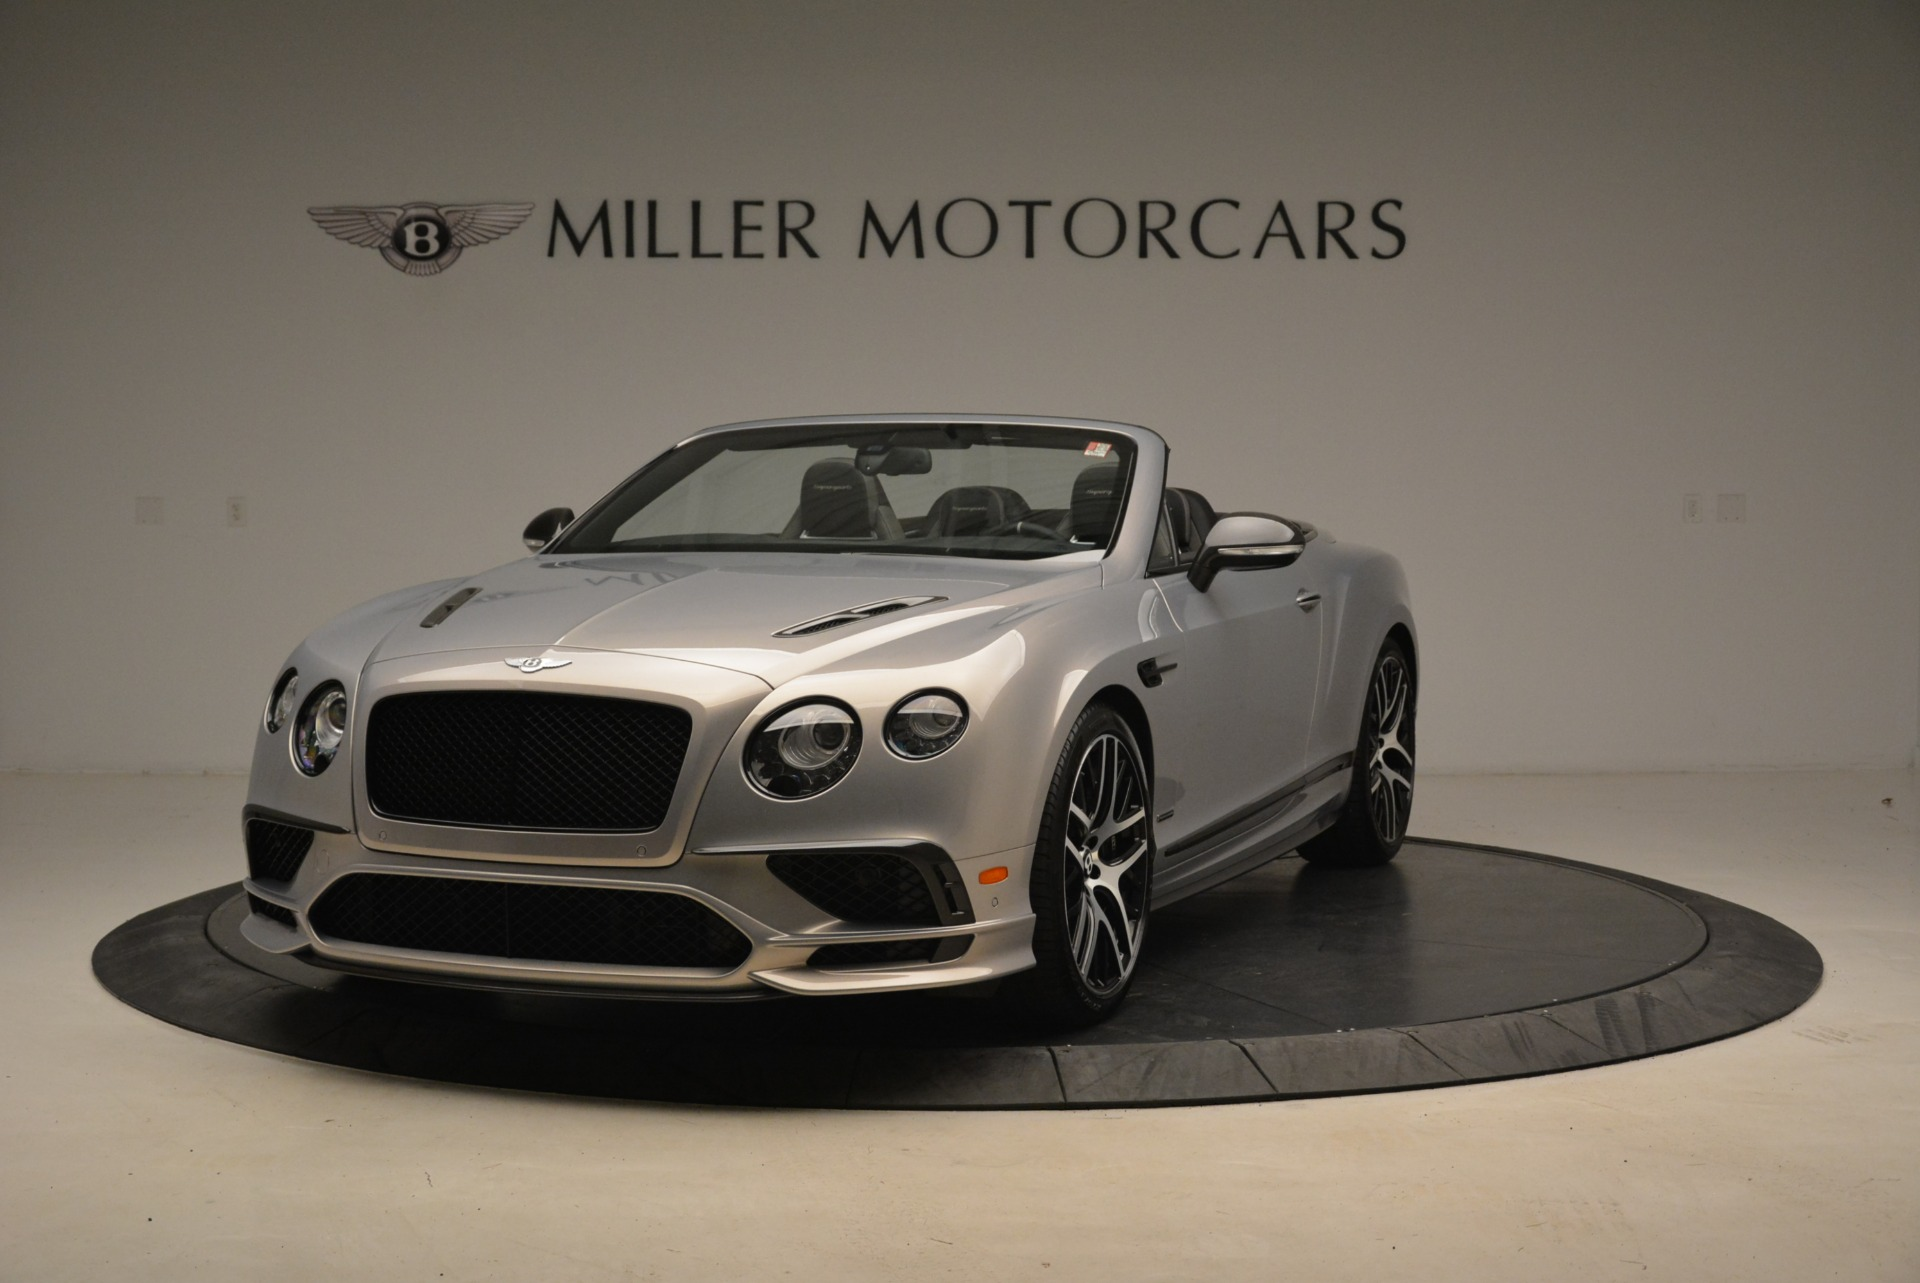 Used 2018 Bentley Continental GT Supersports Convertible for sale Sold at Aston Martin of Greenwich in Greenwich CT 06830 1